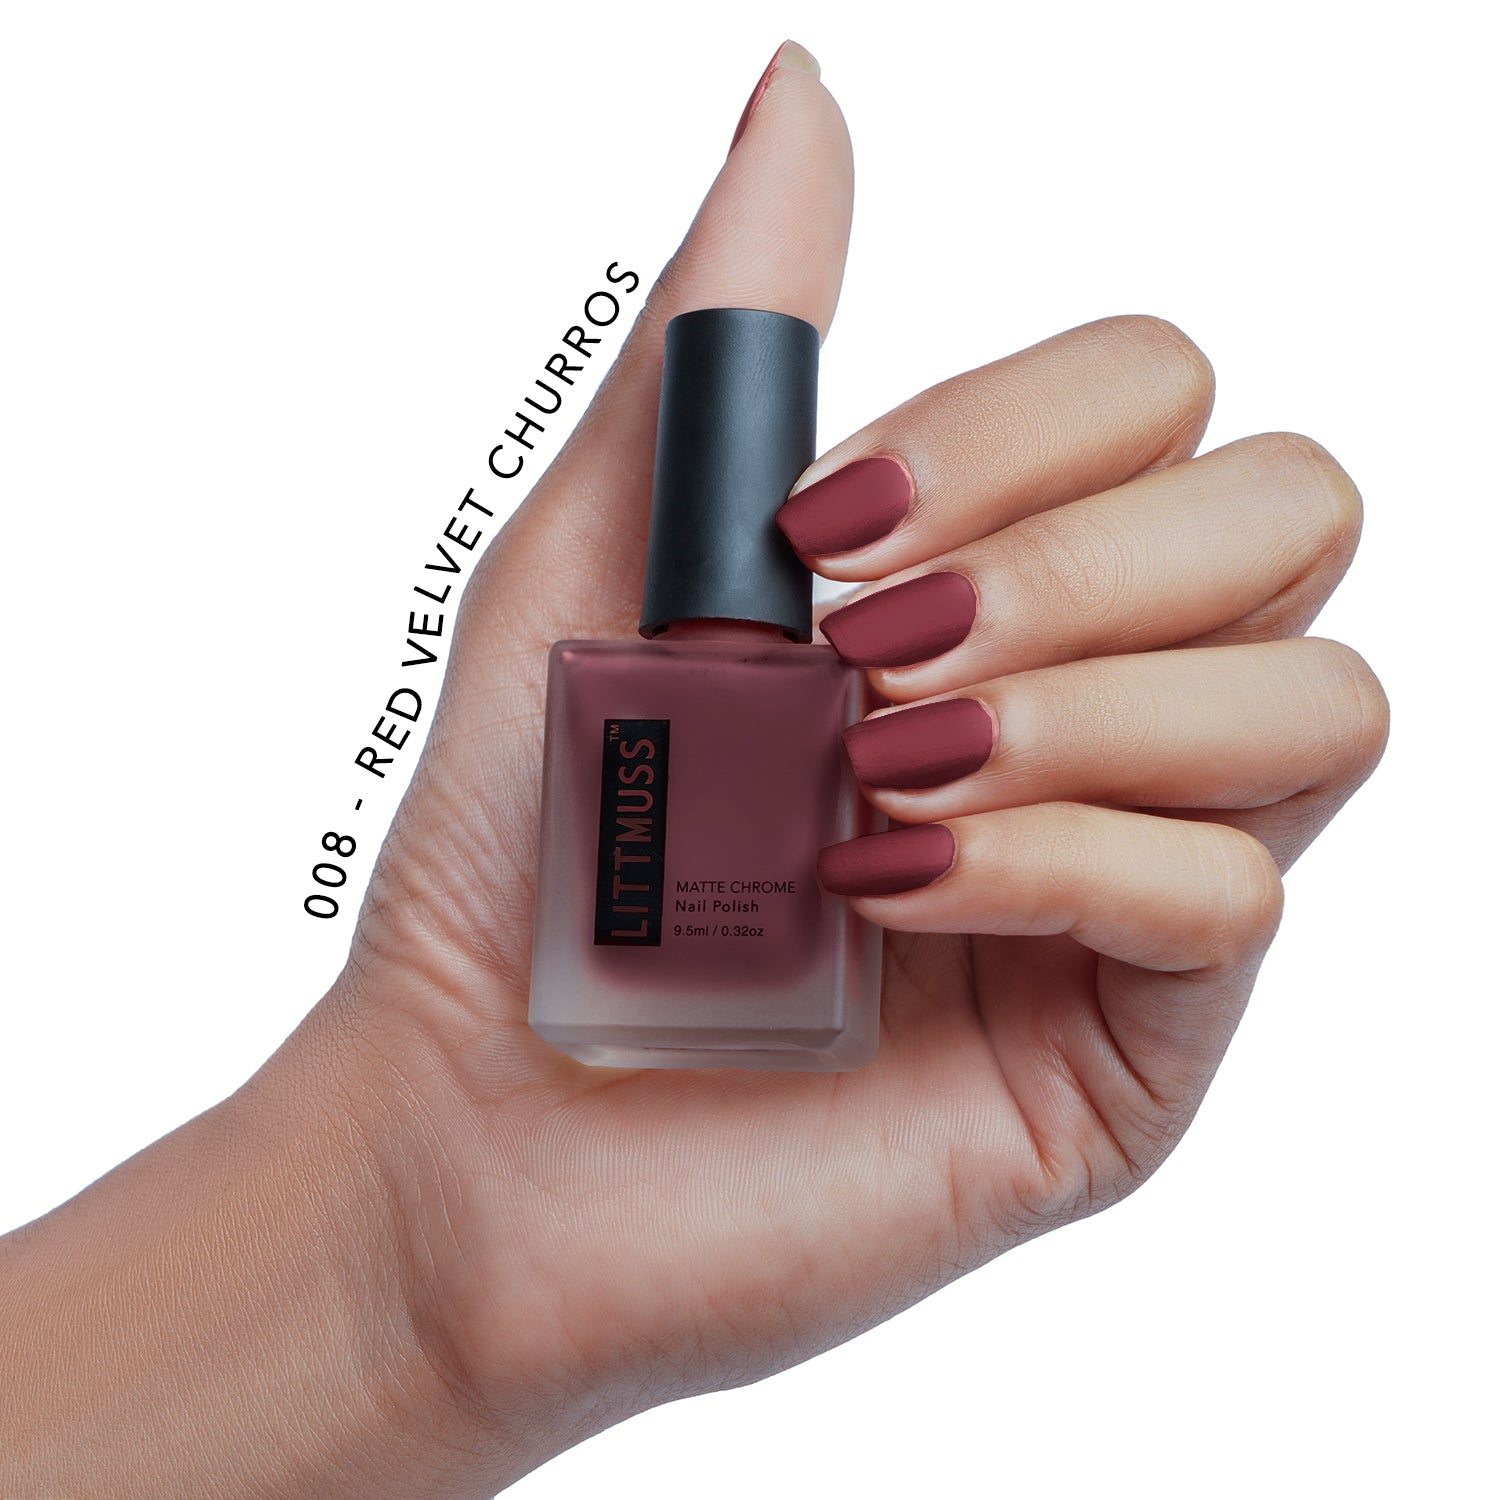 LITTMUSS Matte Chrome Nail Polish Fashionista Combo